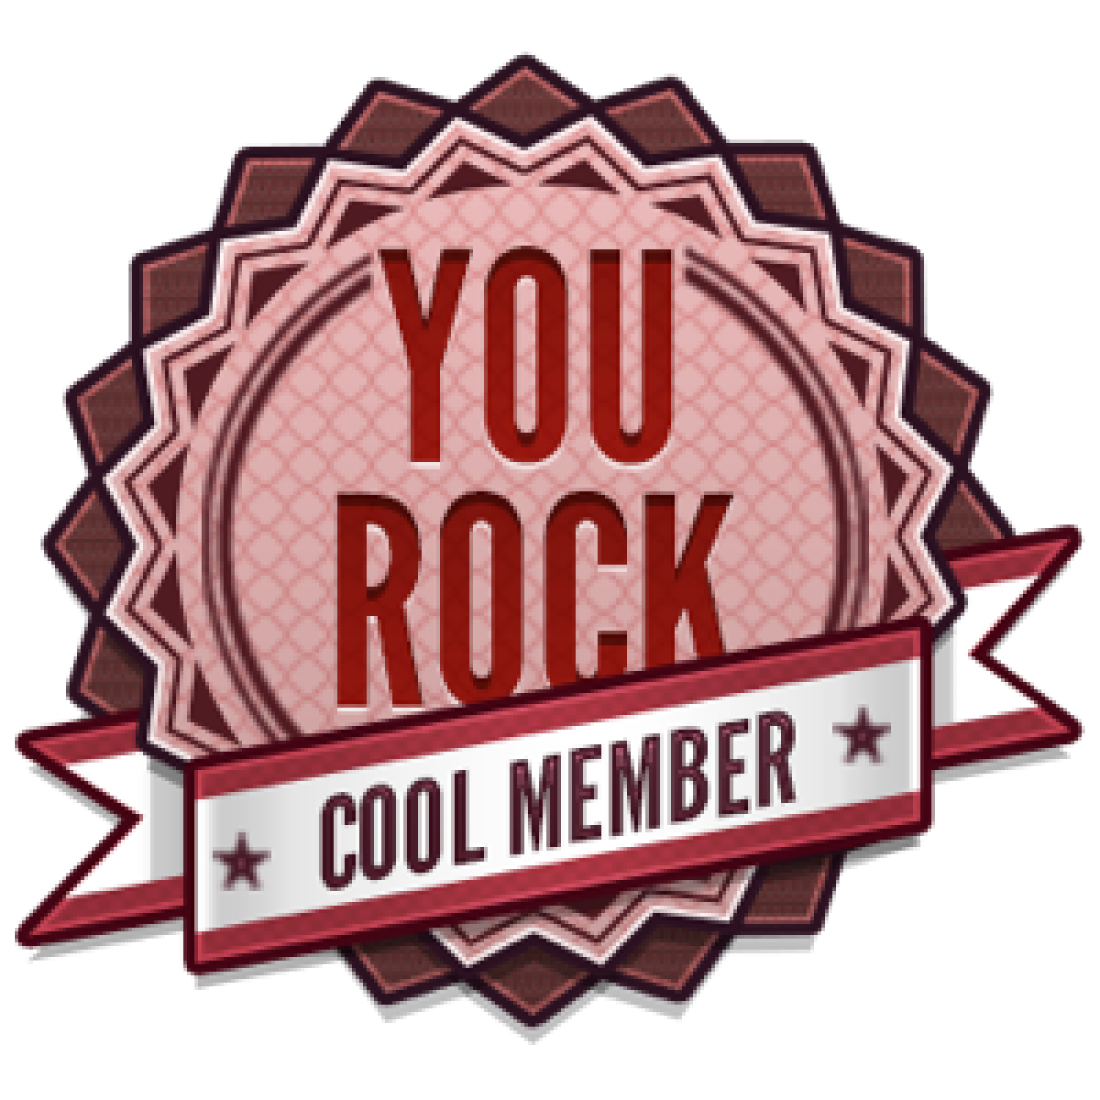 New Members Rock Badge